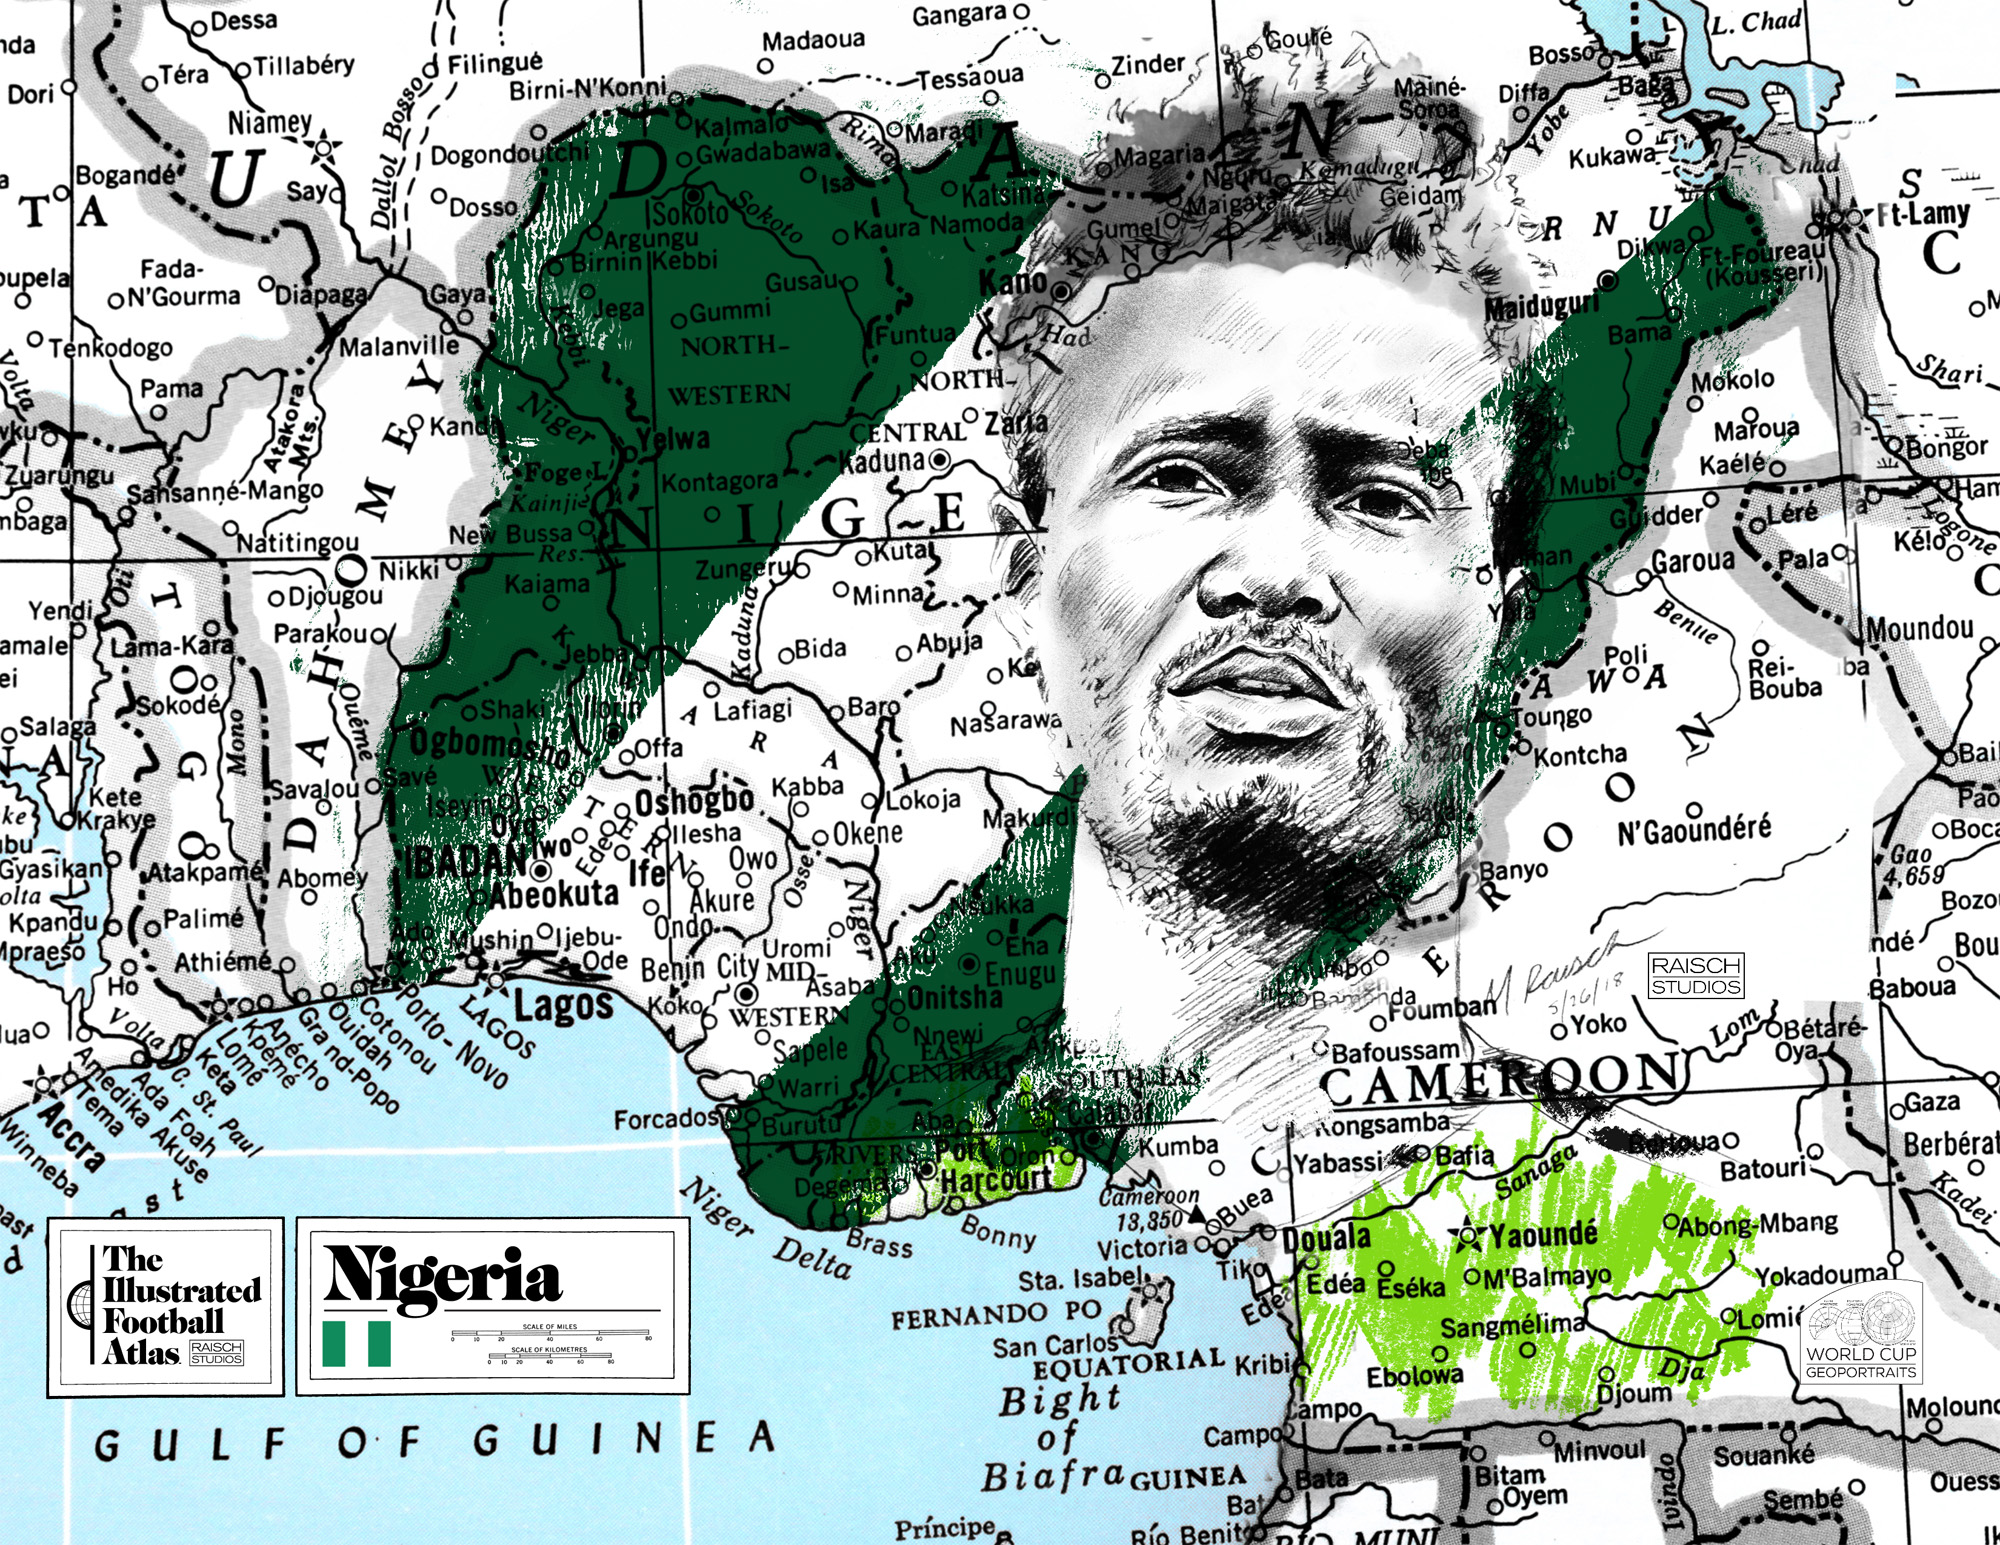 Nigeria_the_Football_Atlas_WorldCup2018-Raisch.jpg